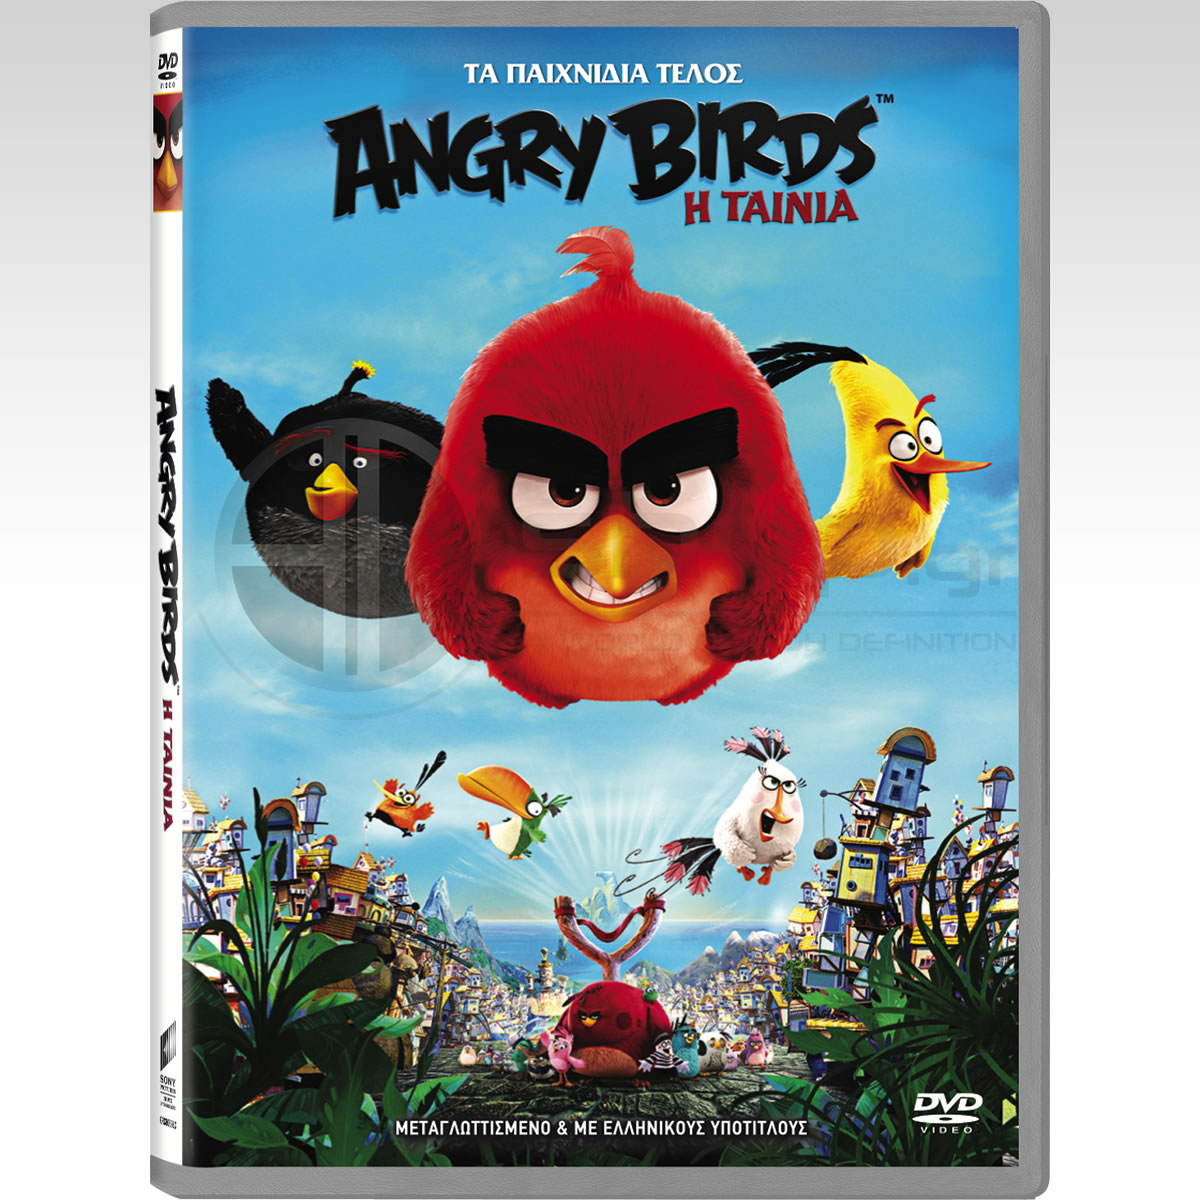 ANGRY BIRDS: THE MOVIE - ANGRY BIRDS: Η ΤΑΙΝΙΑ (DVD) & ΜΕΤΑΓΛΩΤΤΙΣΜΕΝΟ ΣΤΑ ΕΛΛΗΝΙΚΑ